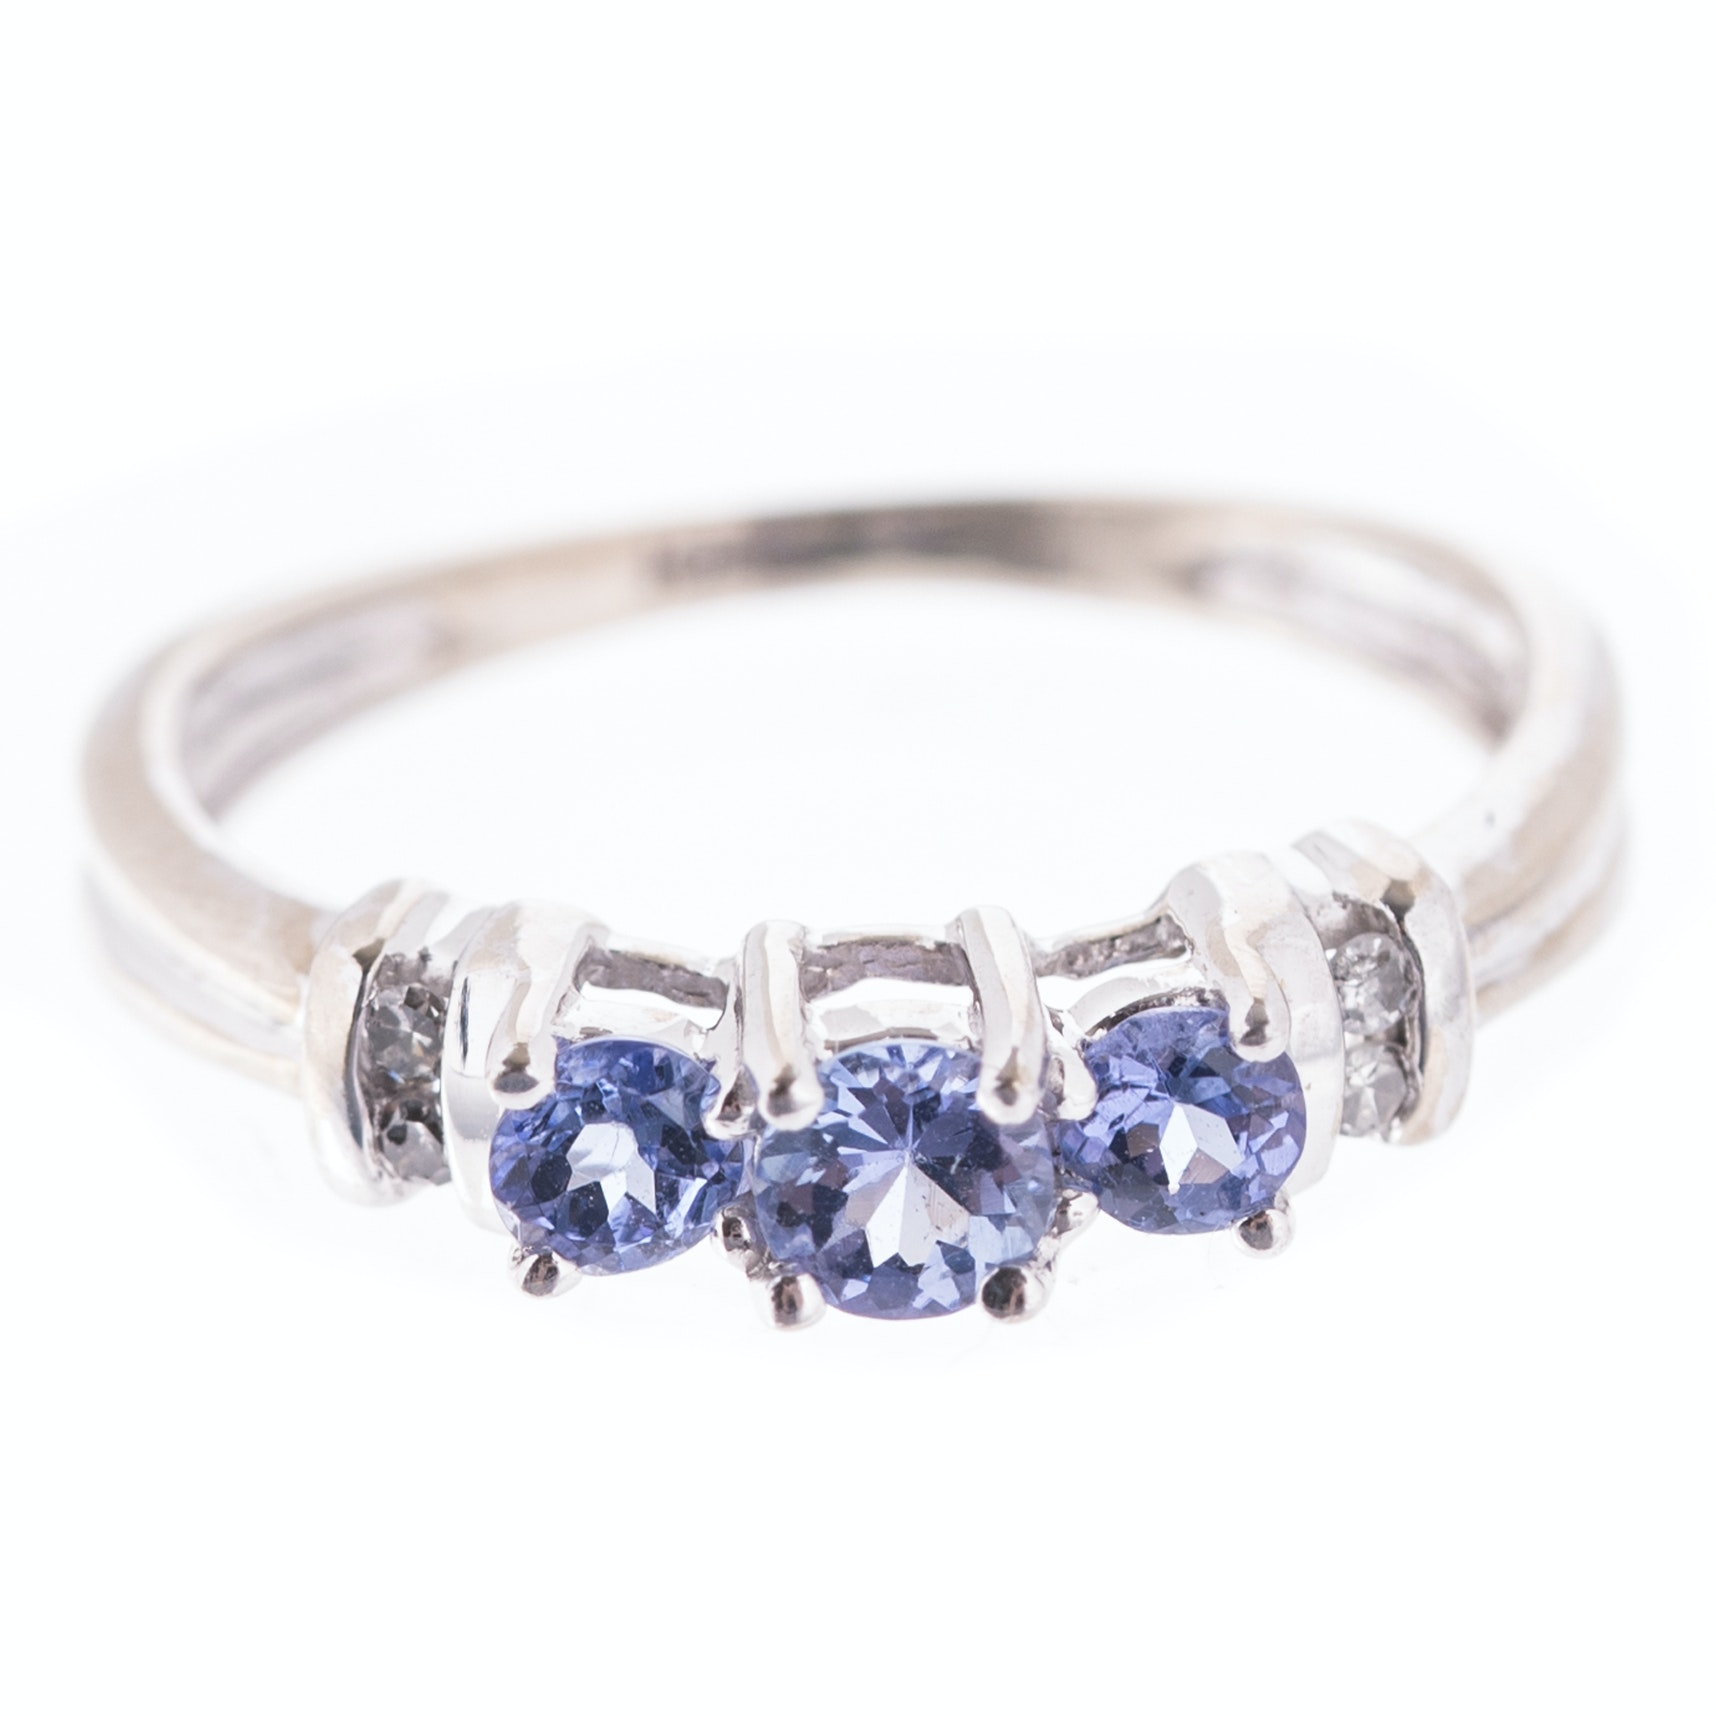 10K White Gold, Diamond, and Tanzanite Fashion Ring